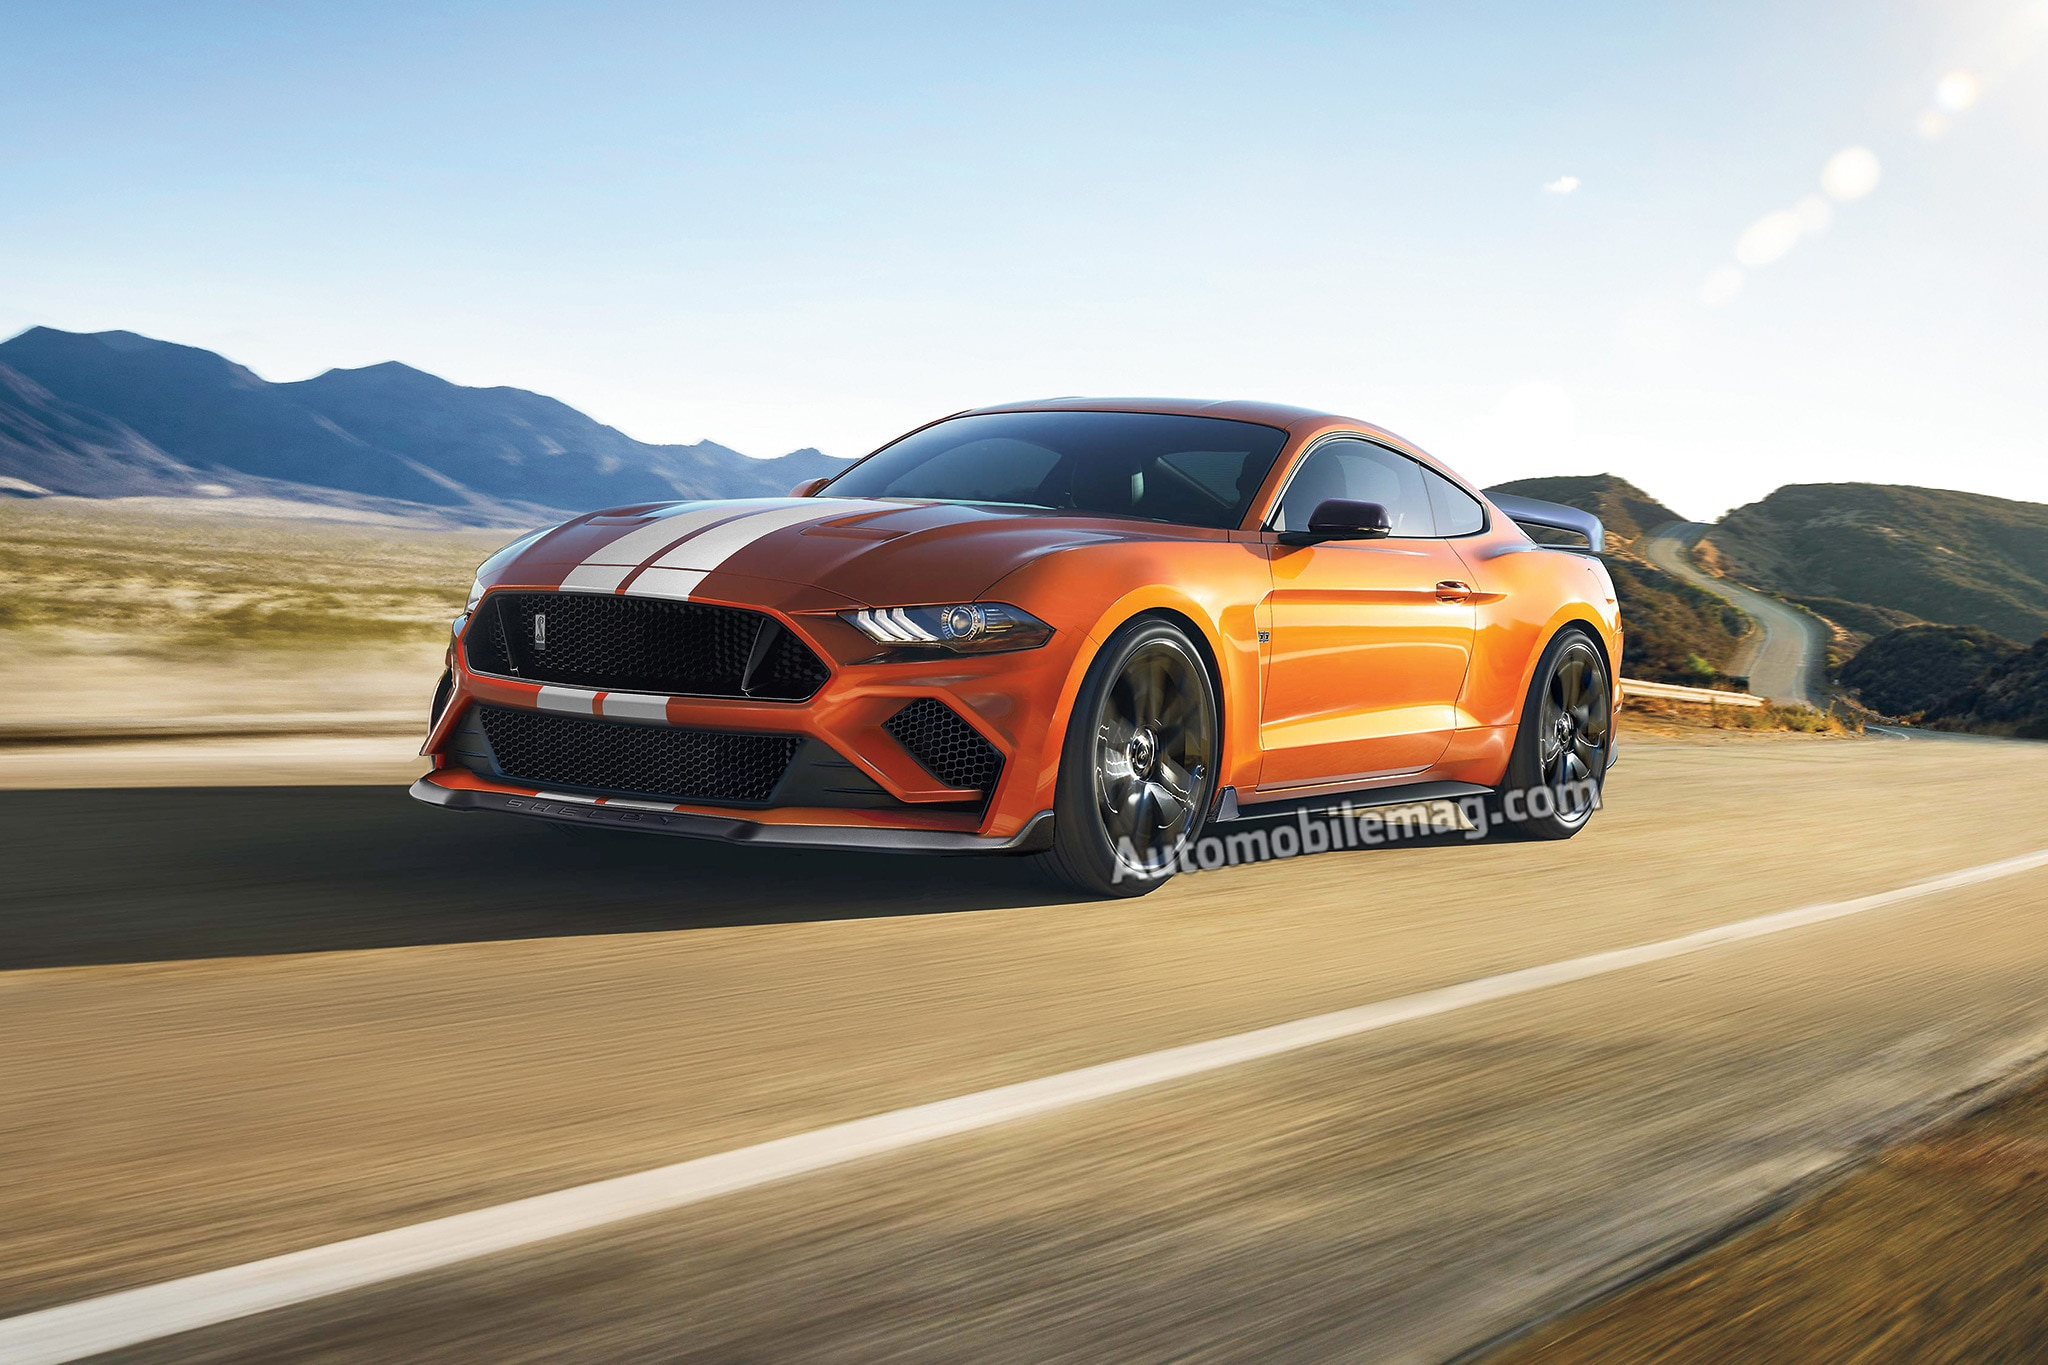 2019 Gt 500 >> 2019 Ford Mustang Shelby Gt500 Confirmed With 700 Horsepower